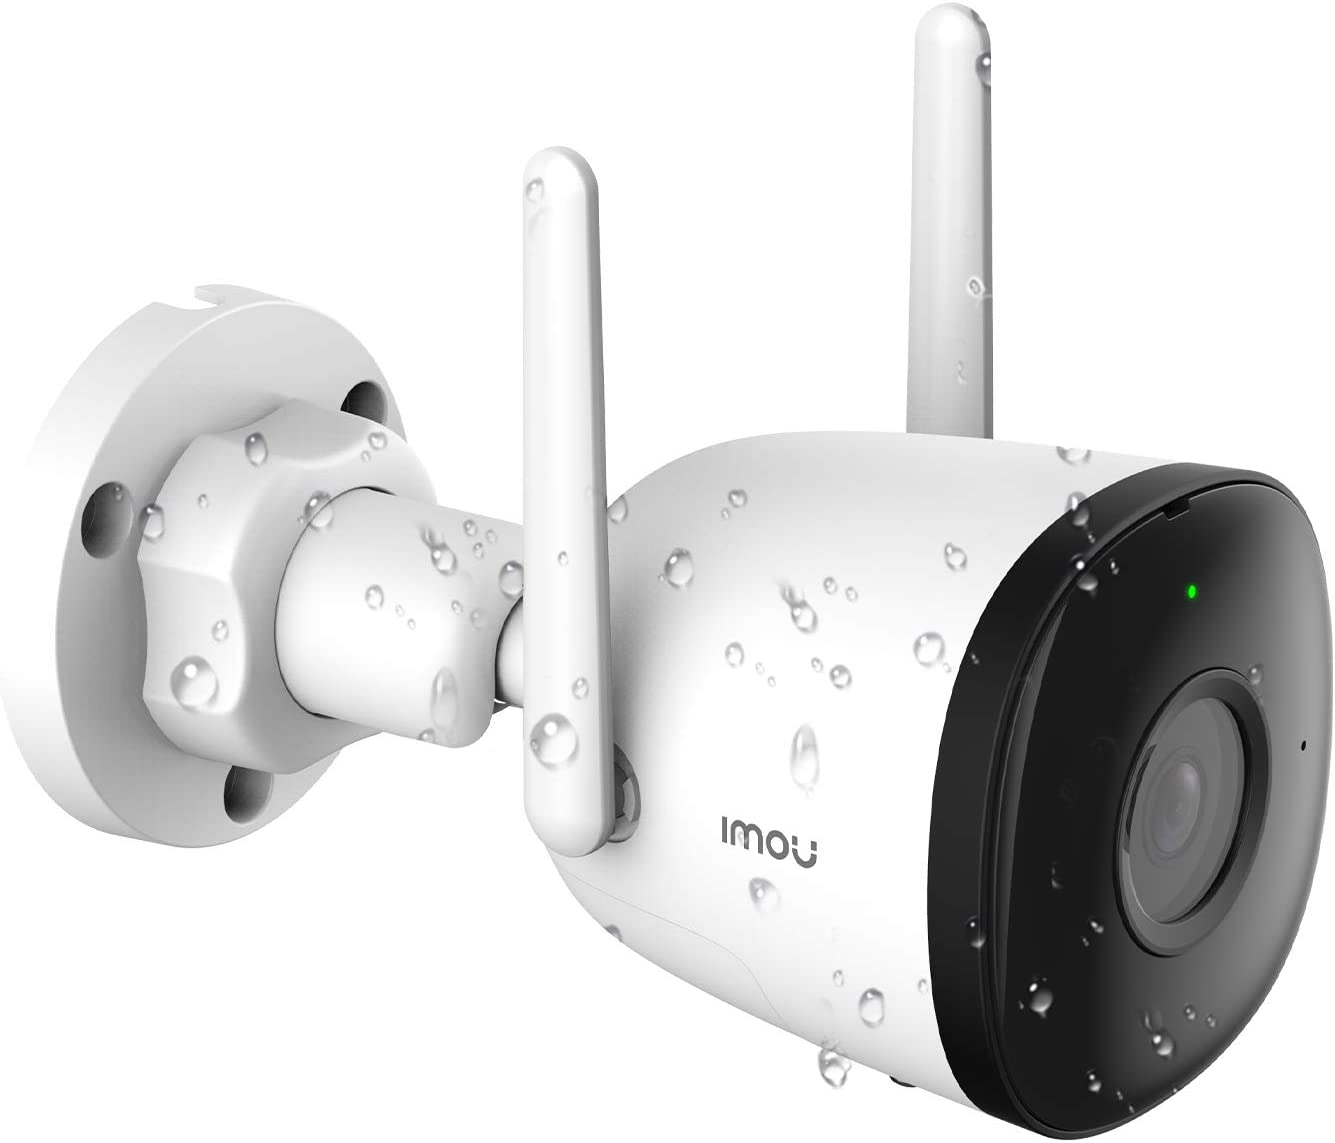 Imou Bullet 2C: 1080p Smart Outdoor Security Camera, Smart Monitoring with Night Vision, AI Human Detection, Weatherproof, Built-in Wi-Fi Hotspot and Cloud Support